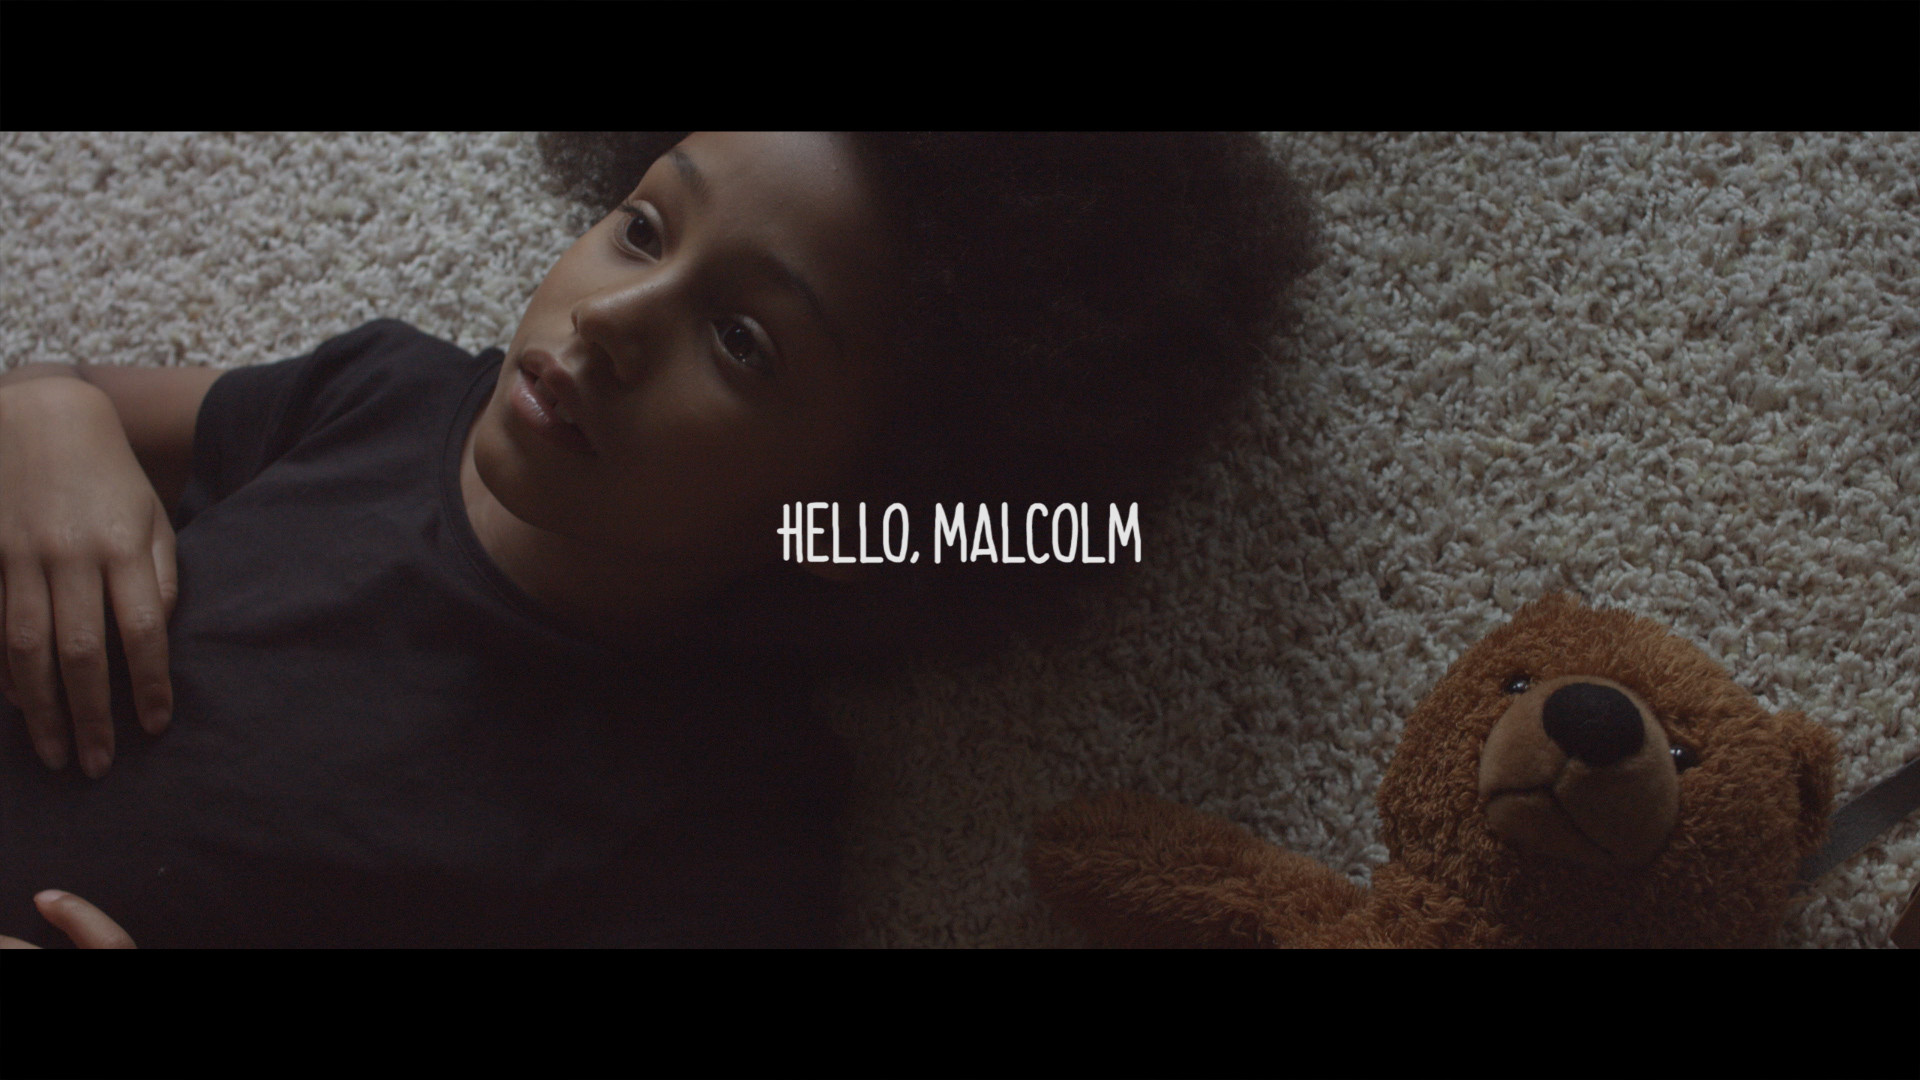 HELLO, MALCOLM – FILM